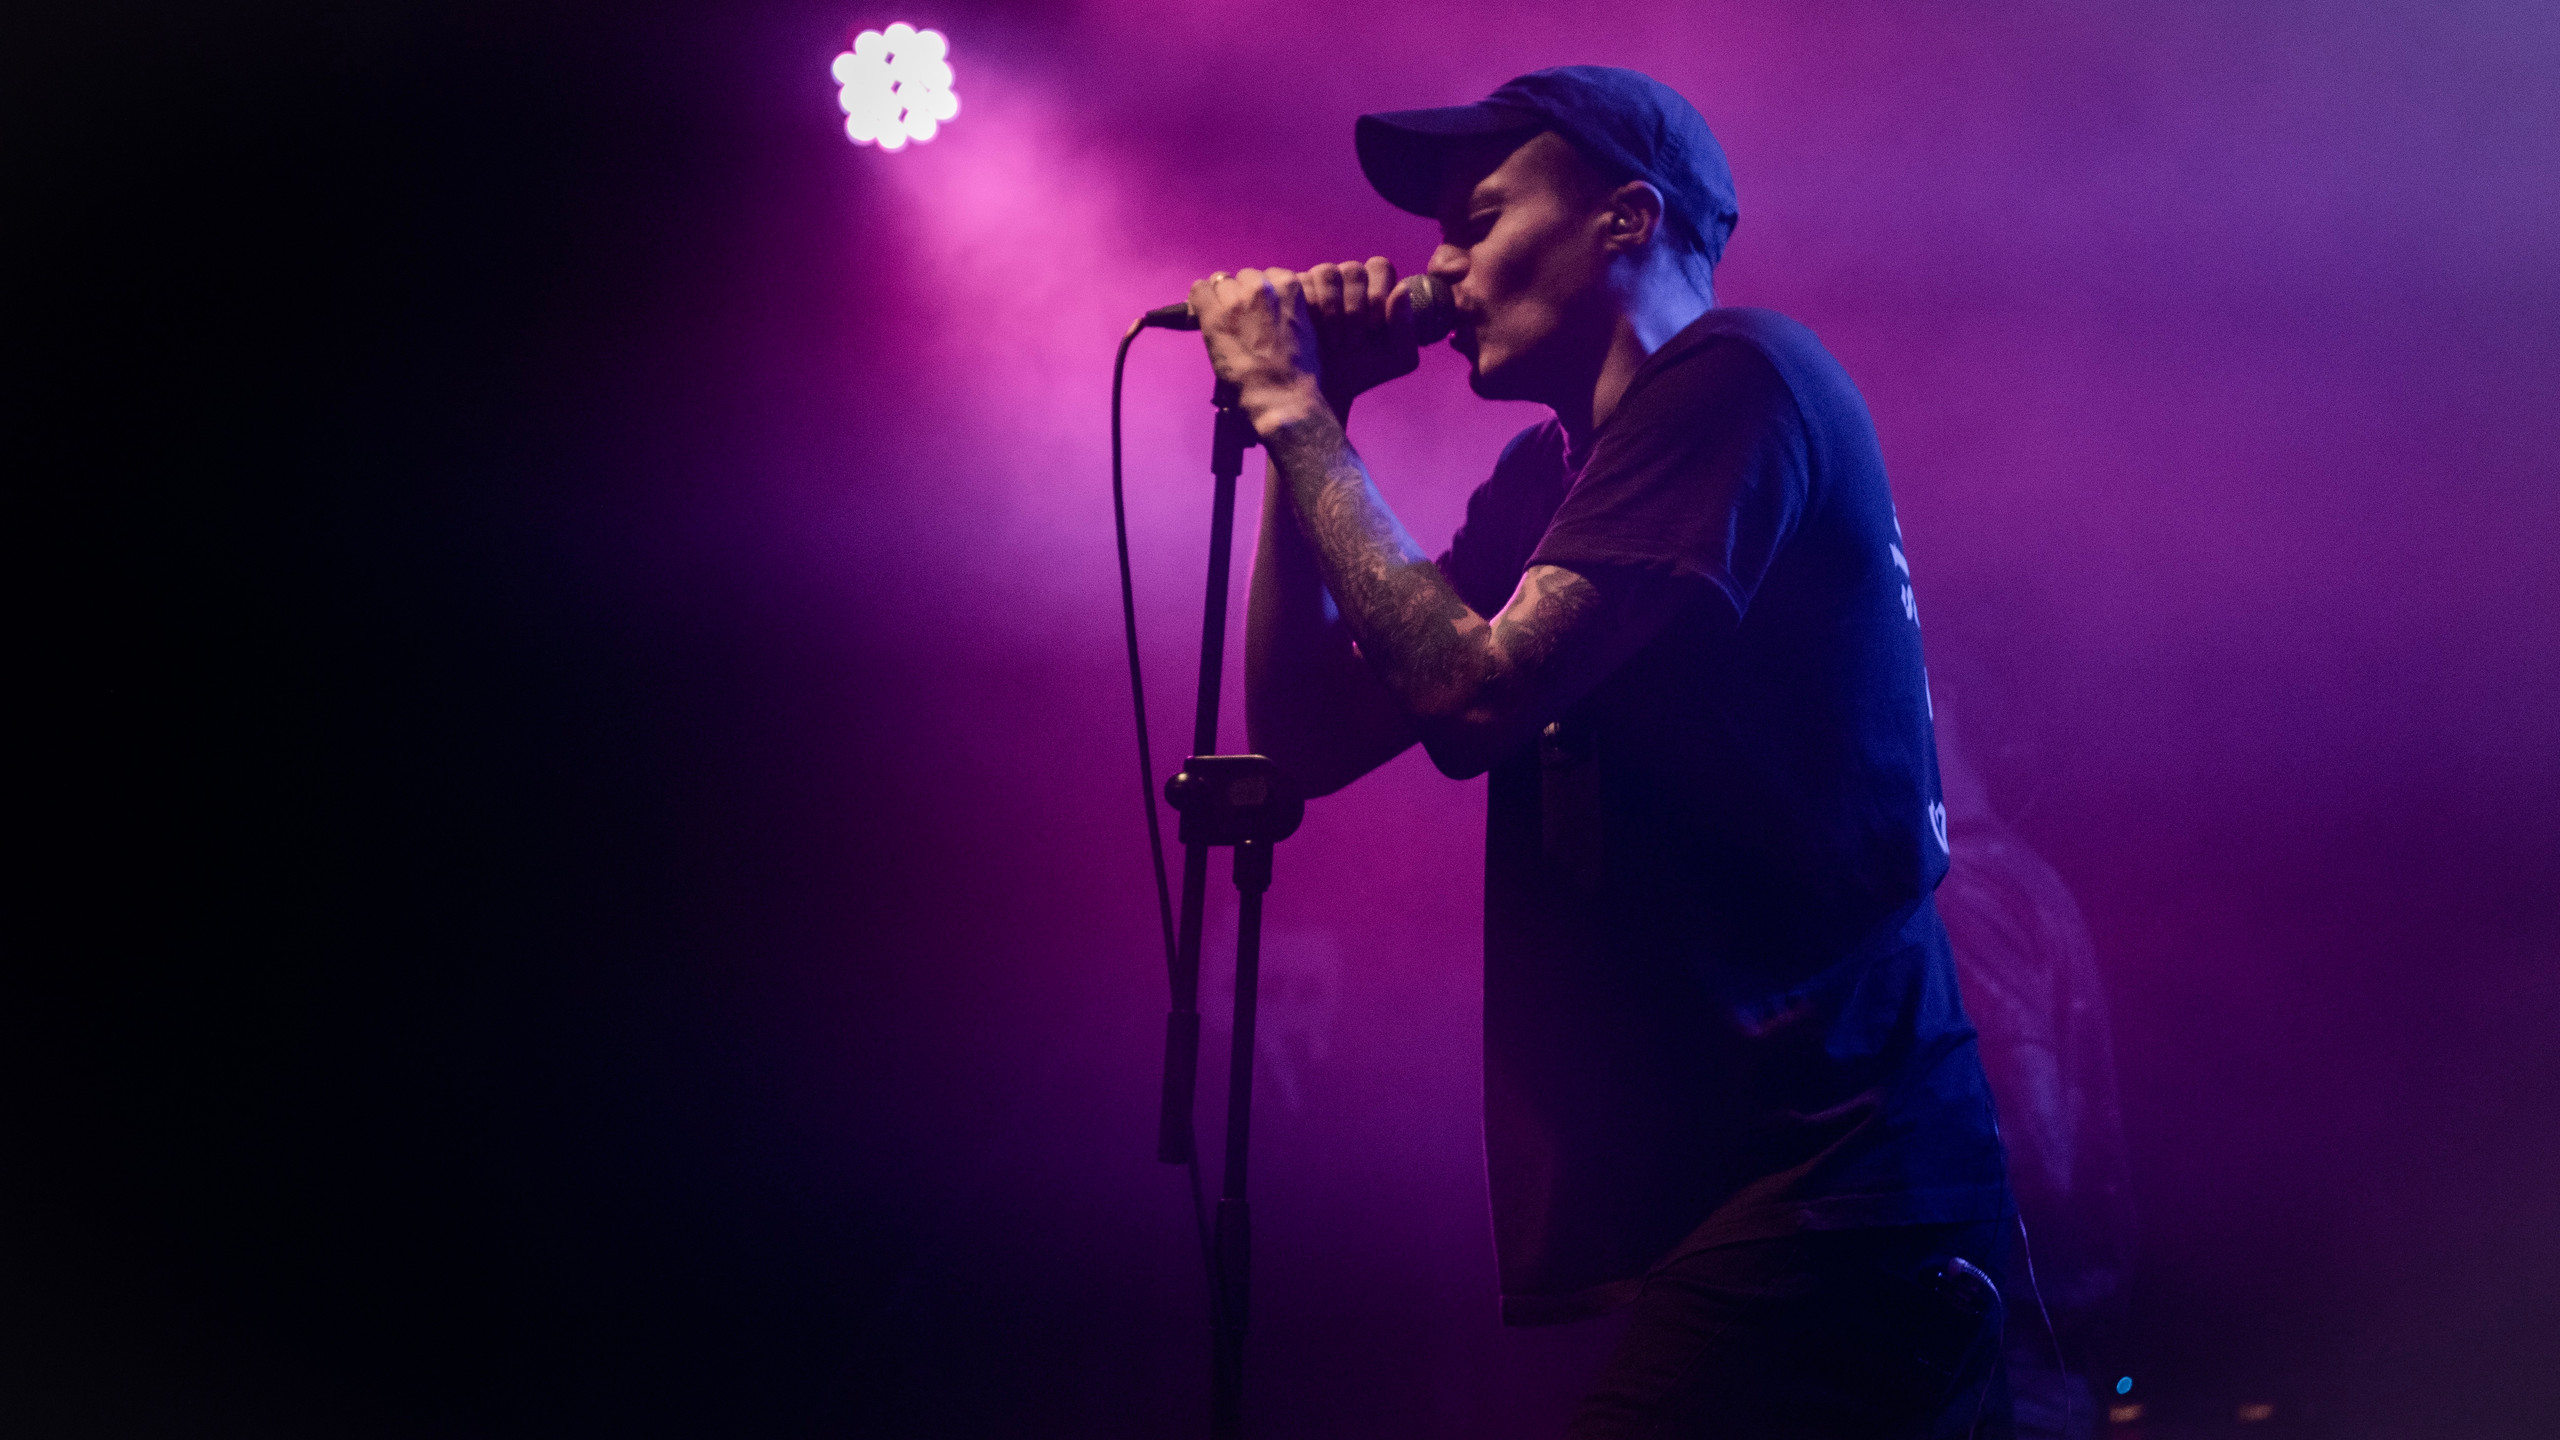 Photo taken by Charlotte Claber at Electric Ballroom on 04.10.2018